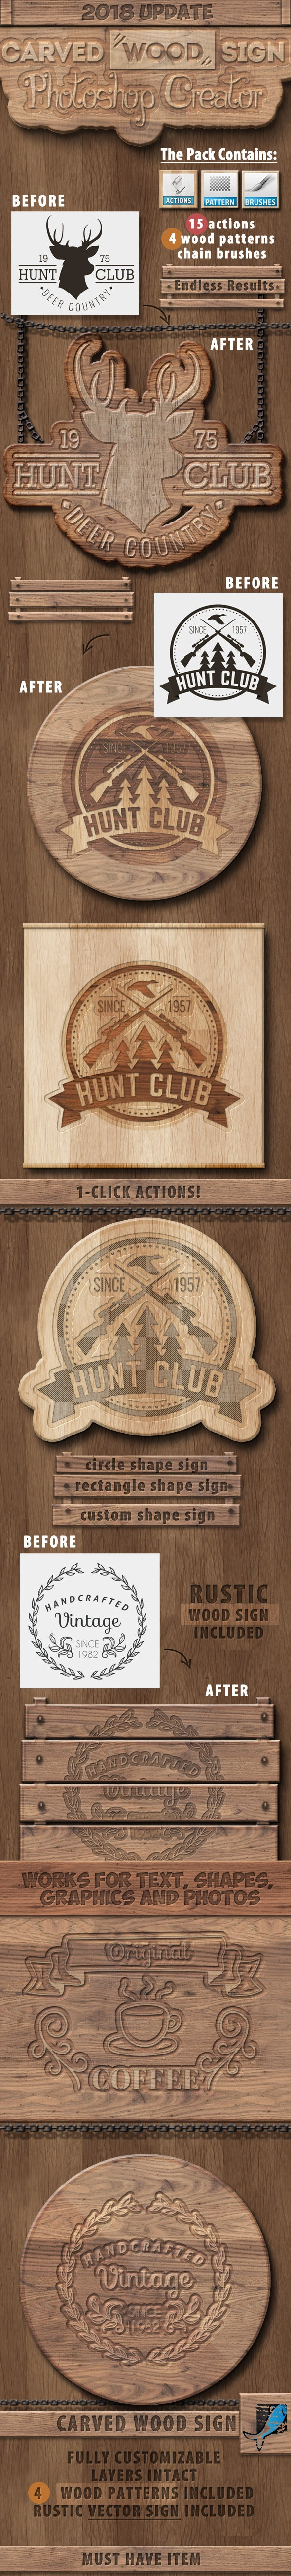 Carved Wood Photoshop Action - Utilities Actions